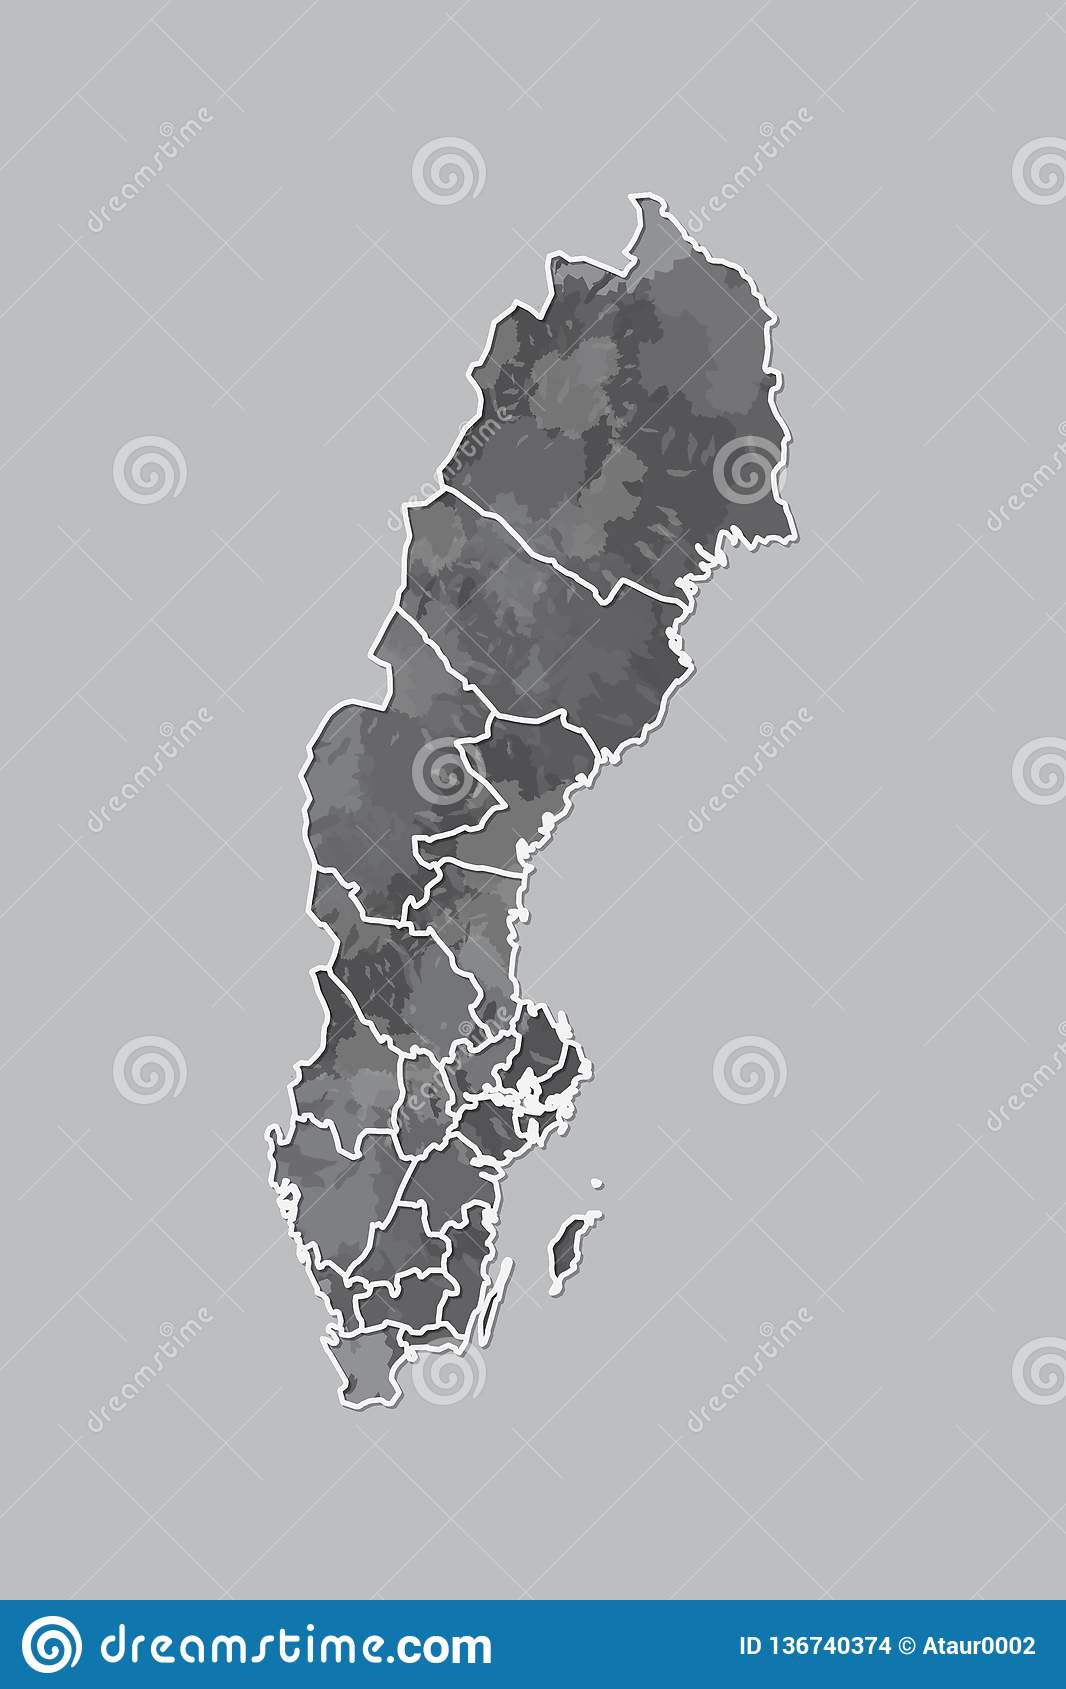 Sweden watercolor map vector illustration of black color with border lines of different regions or provinces on light background